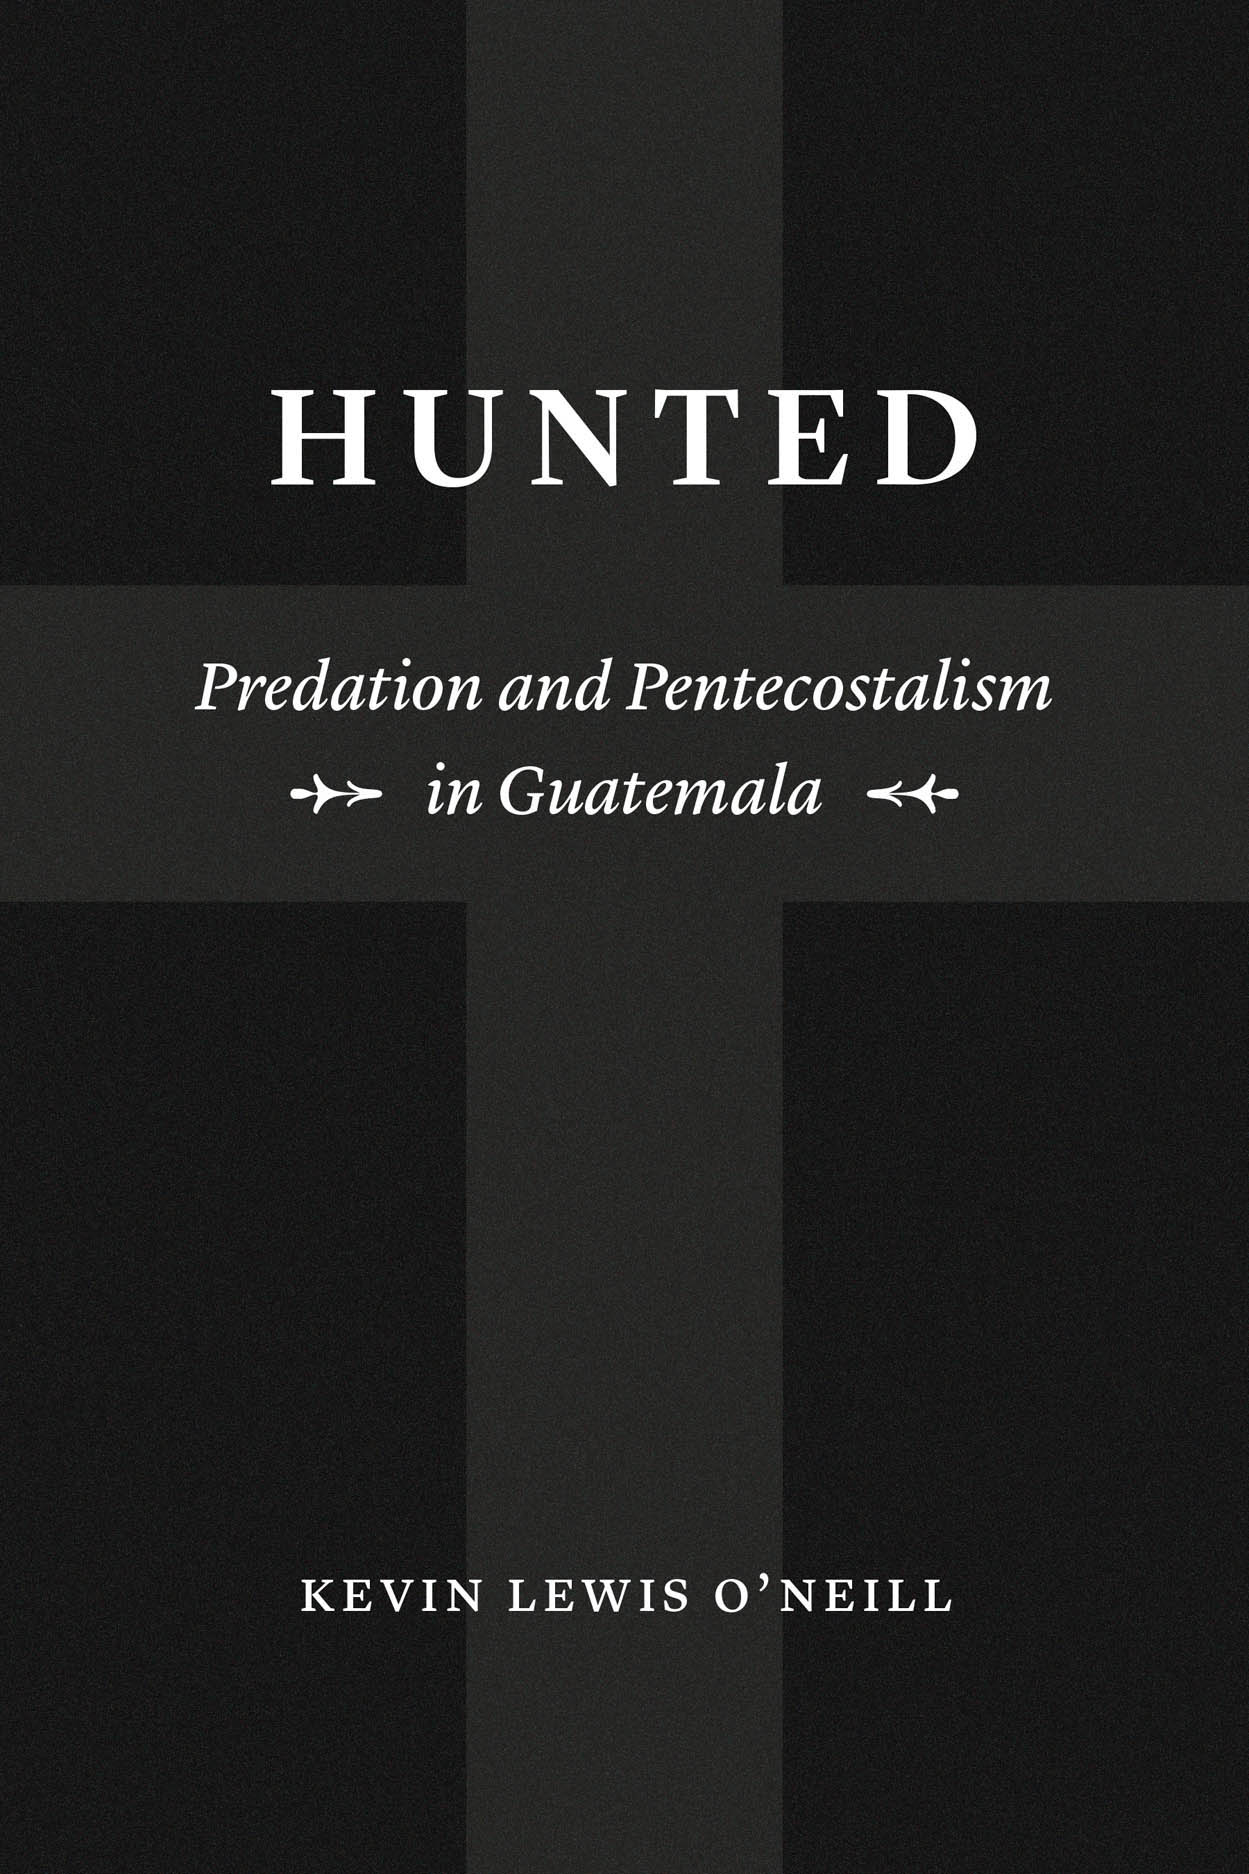 Hunted: Predation and Pentecostalism in Guatemala